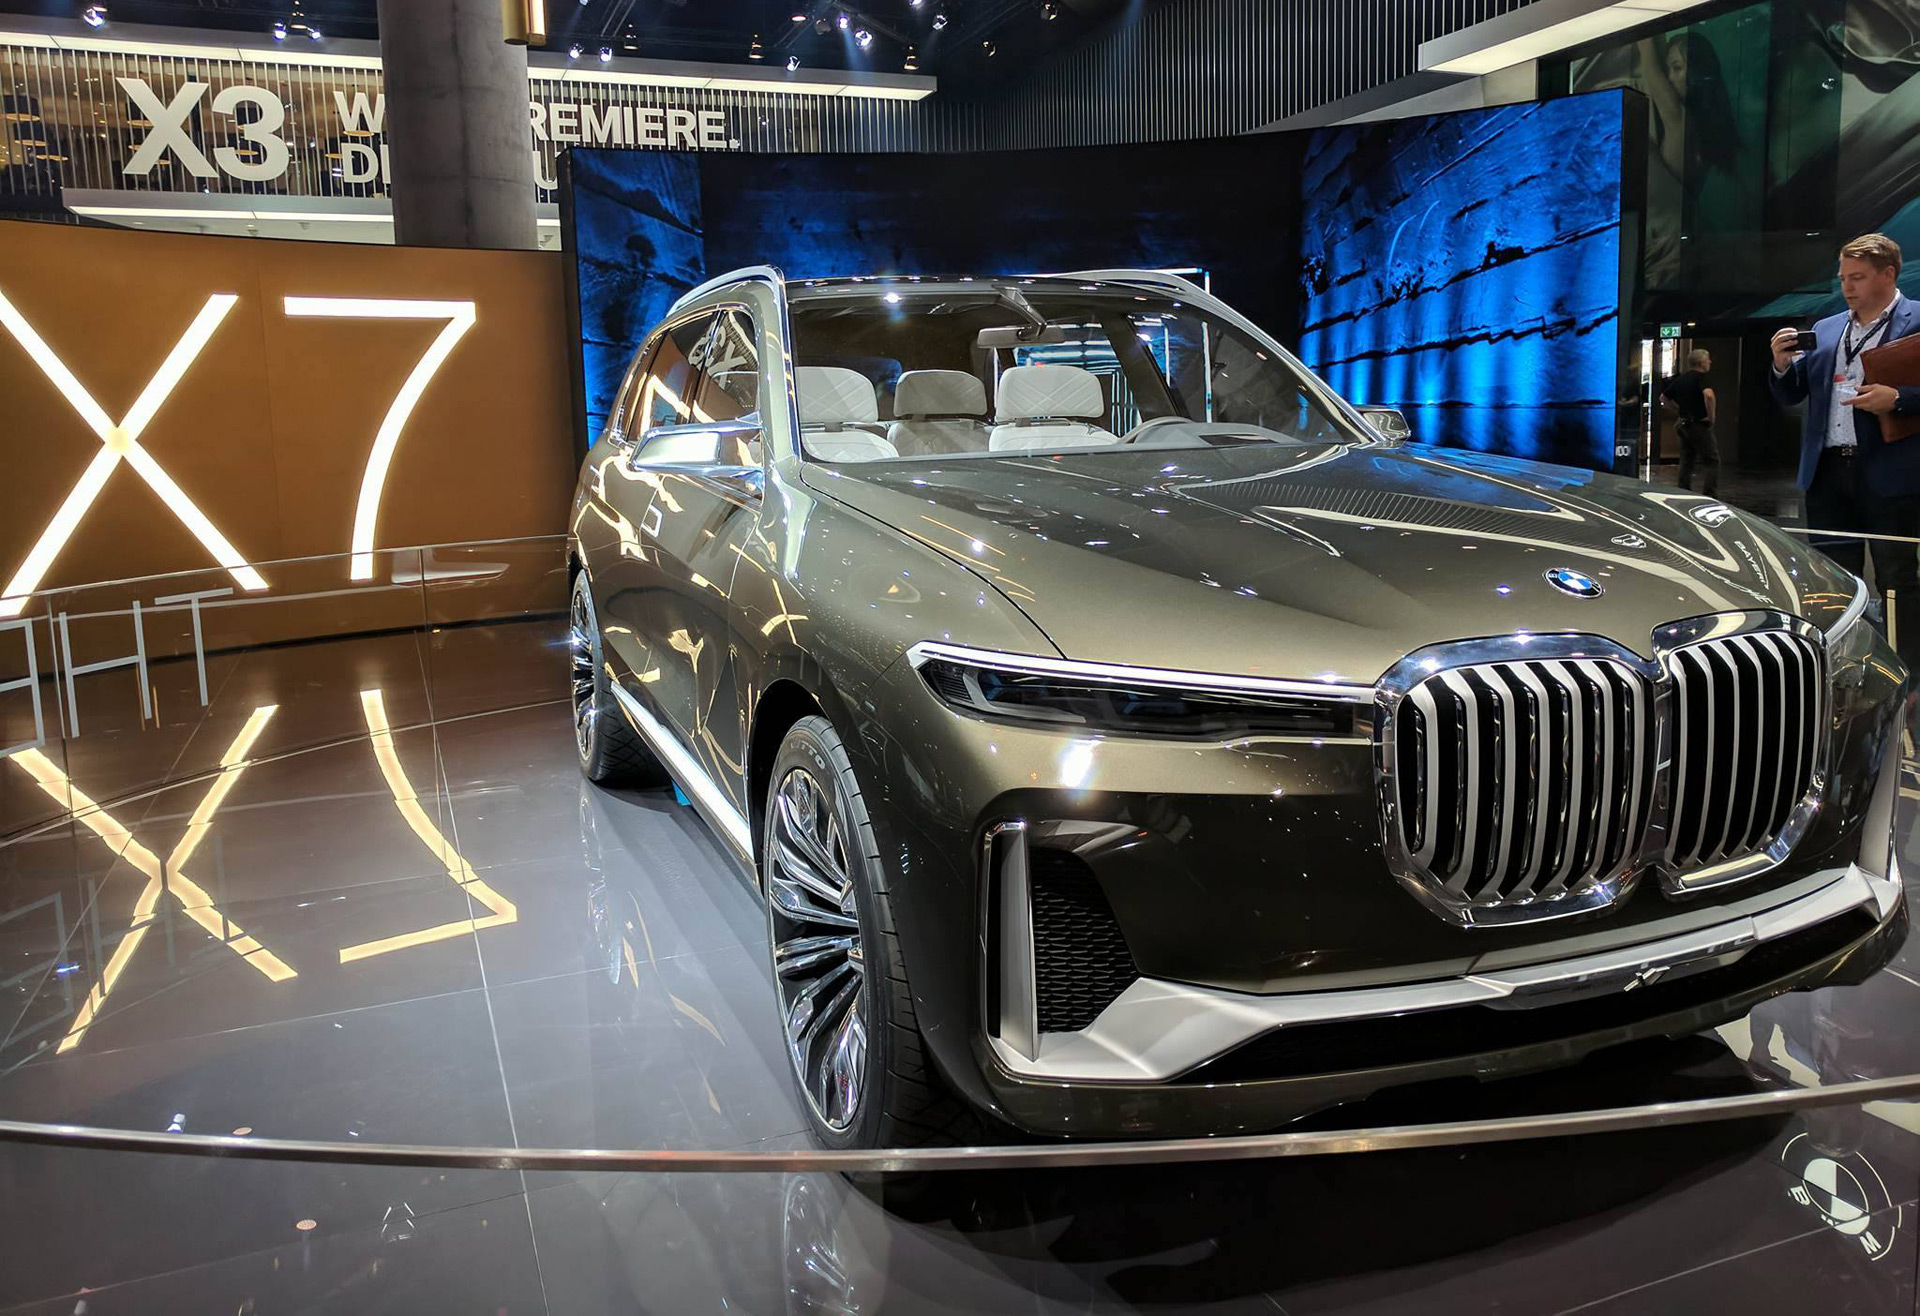 bmw x7 concept previews new full size 3 row suv. Black Bedroom Furniture Sets. Home Design Ideas